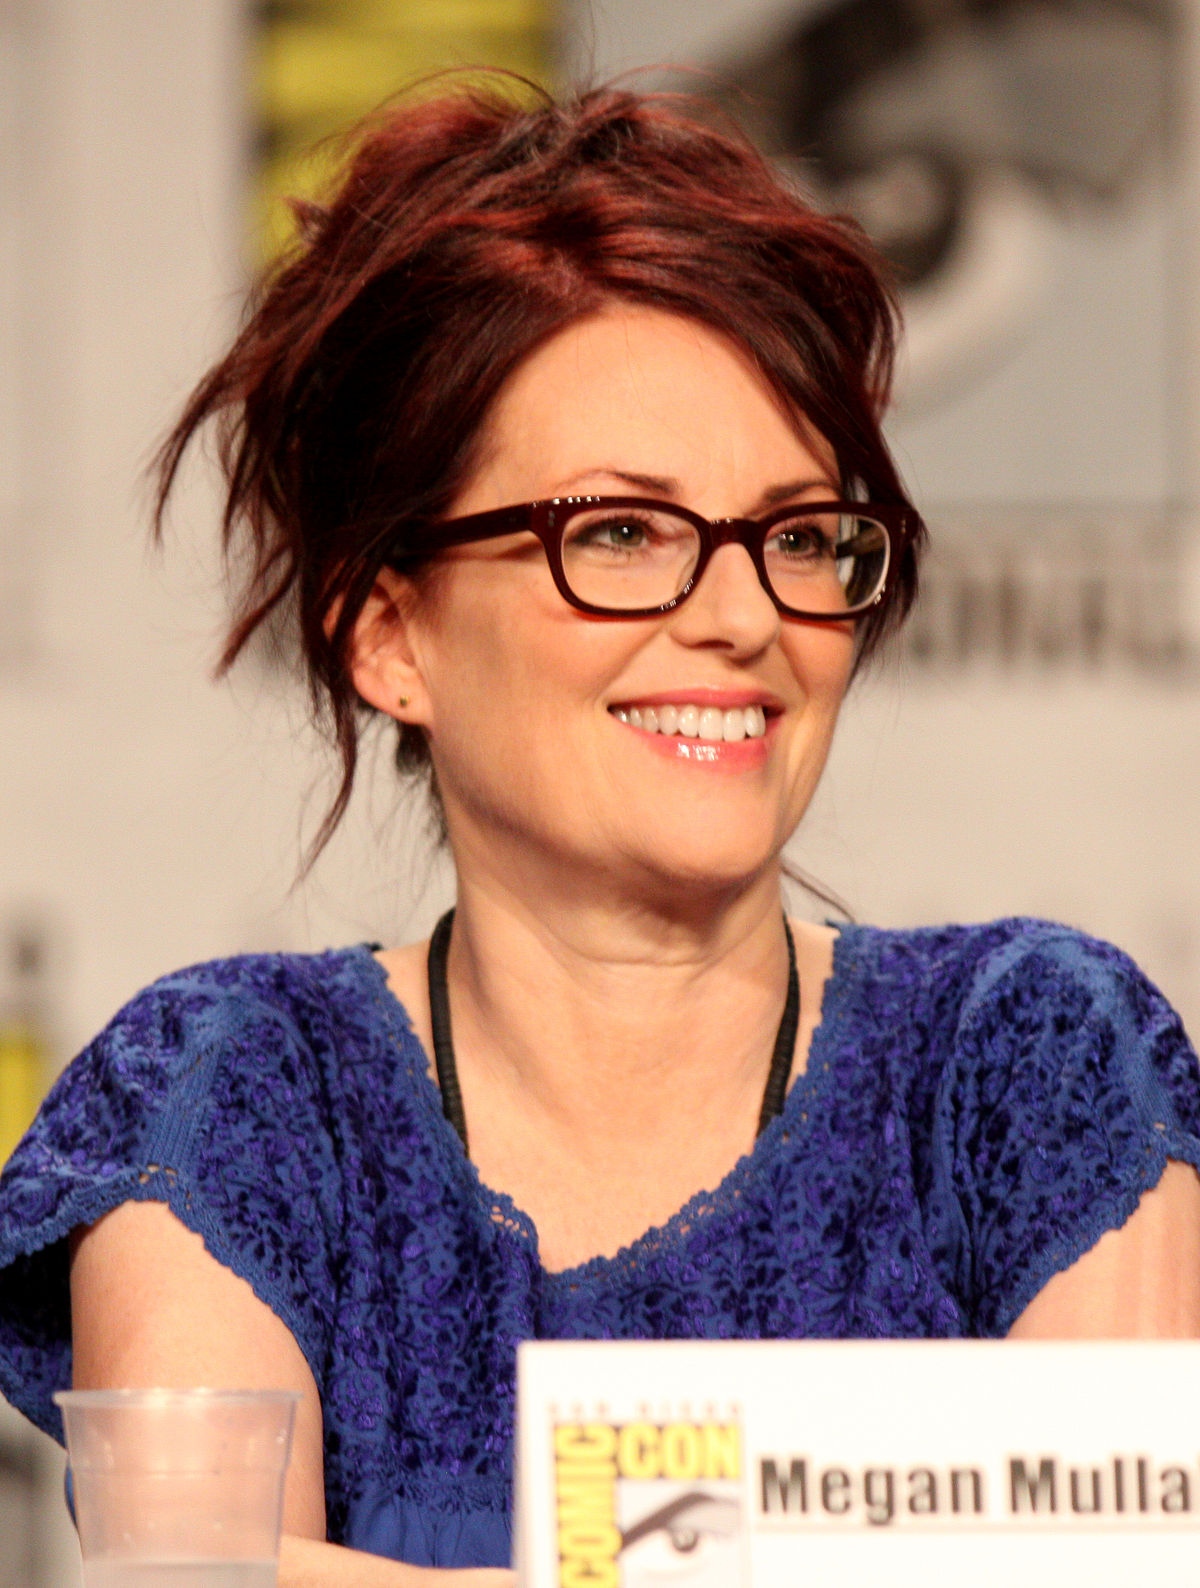 megan mullally - wikipedia